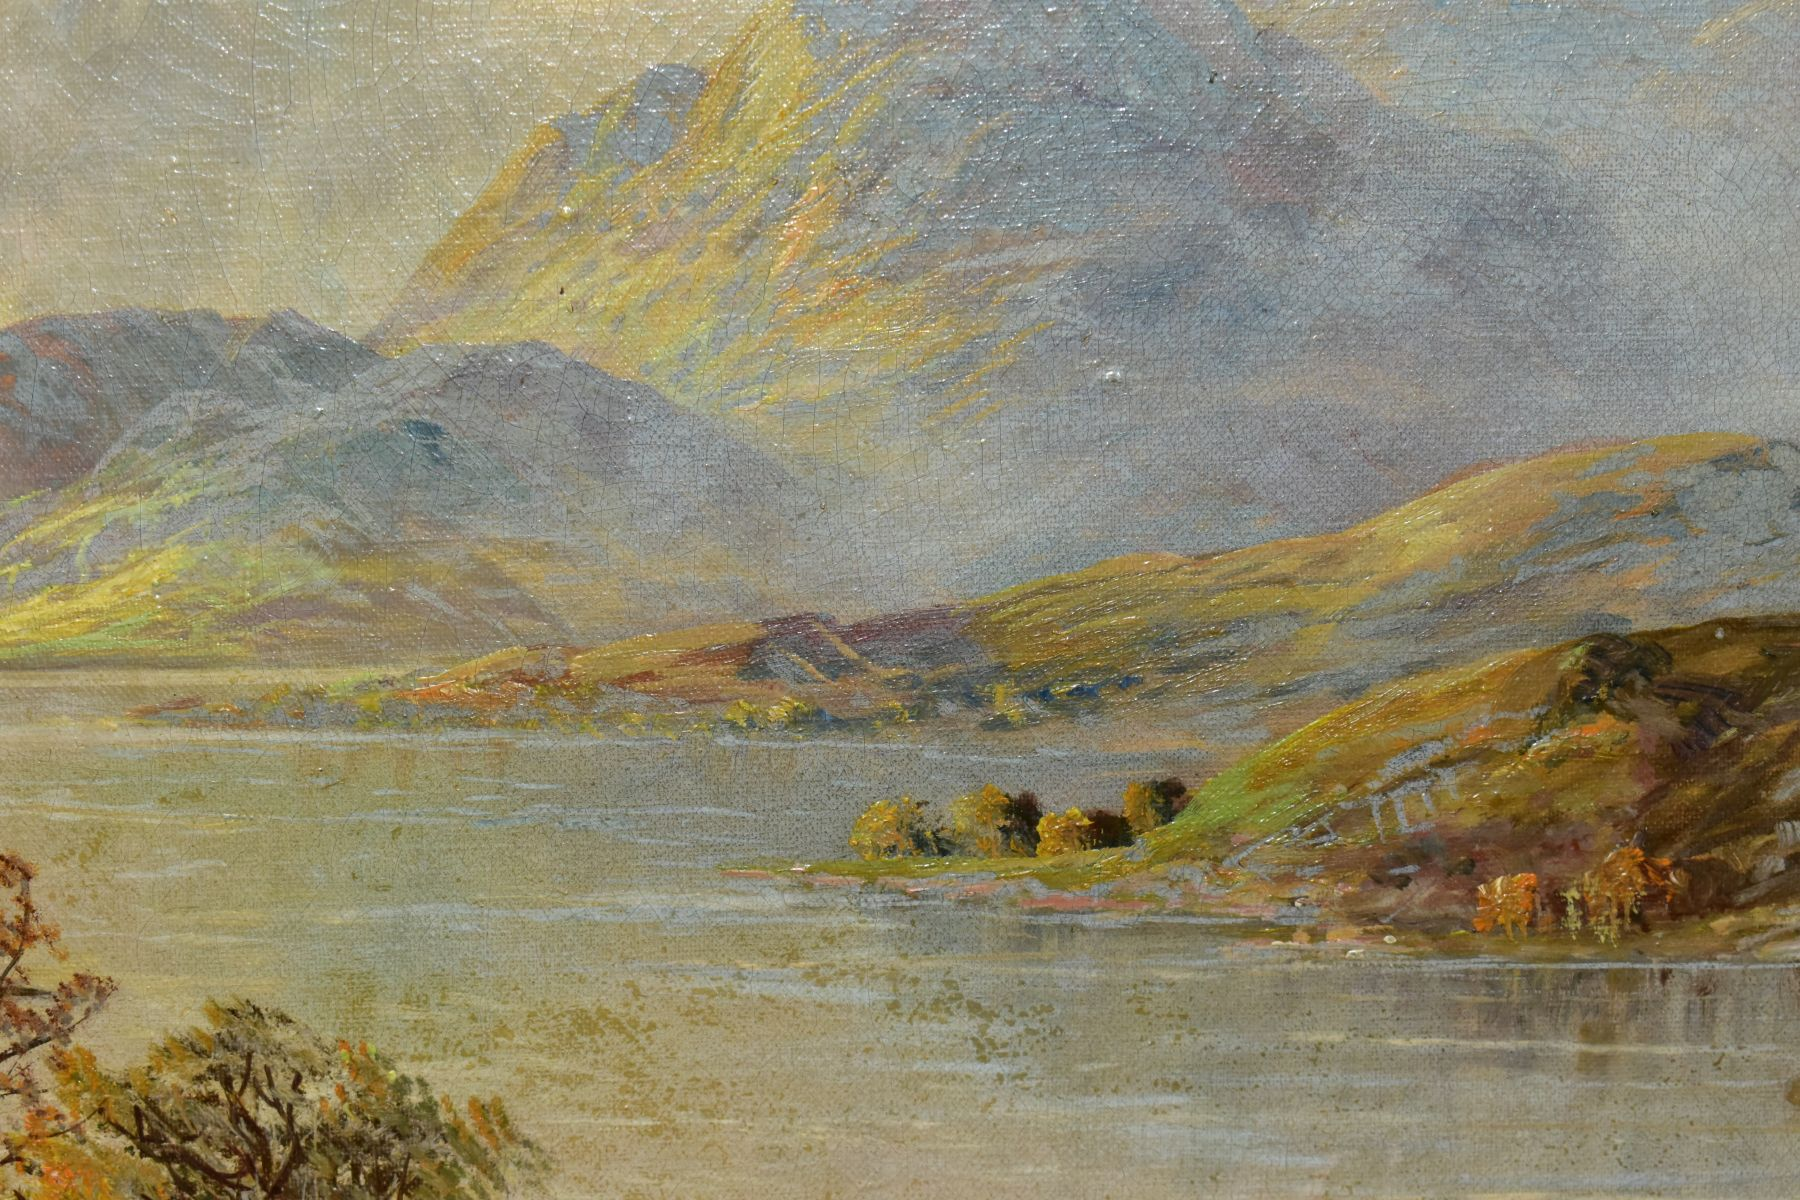 FRANCIS E.JAMIESON (1895-1950) 'LOCH KATRINE', a Scottish landscape, a large body of water to the - Image 4 of 4